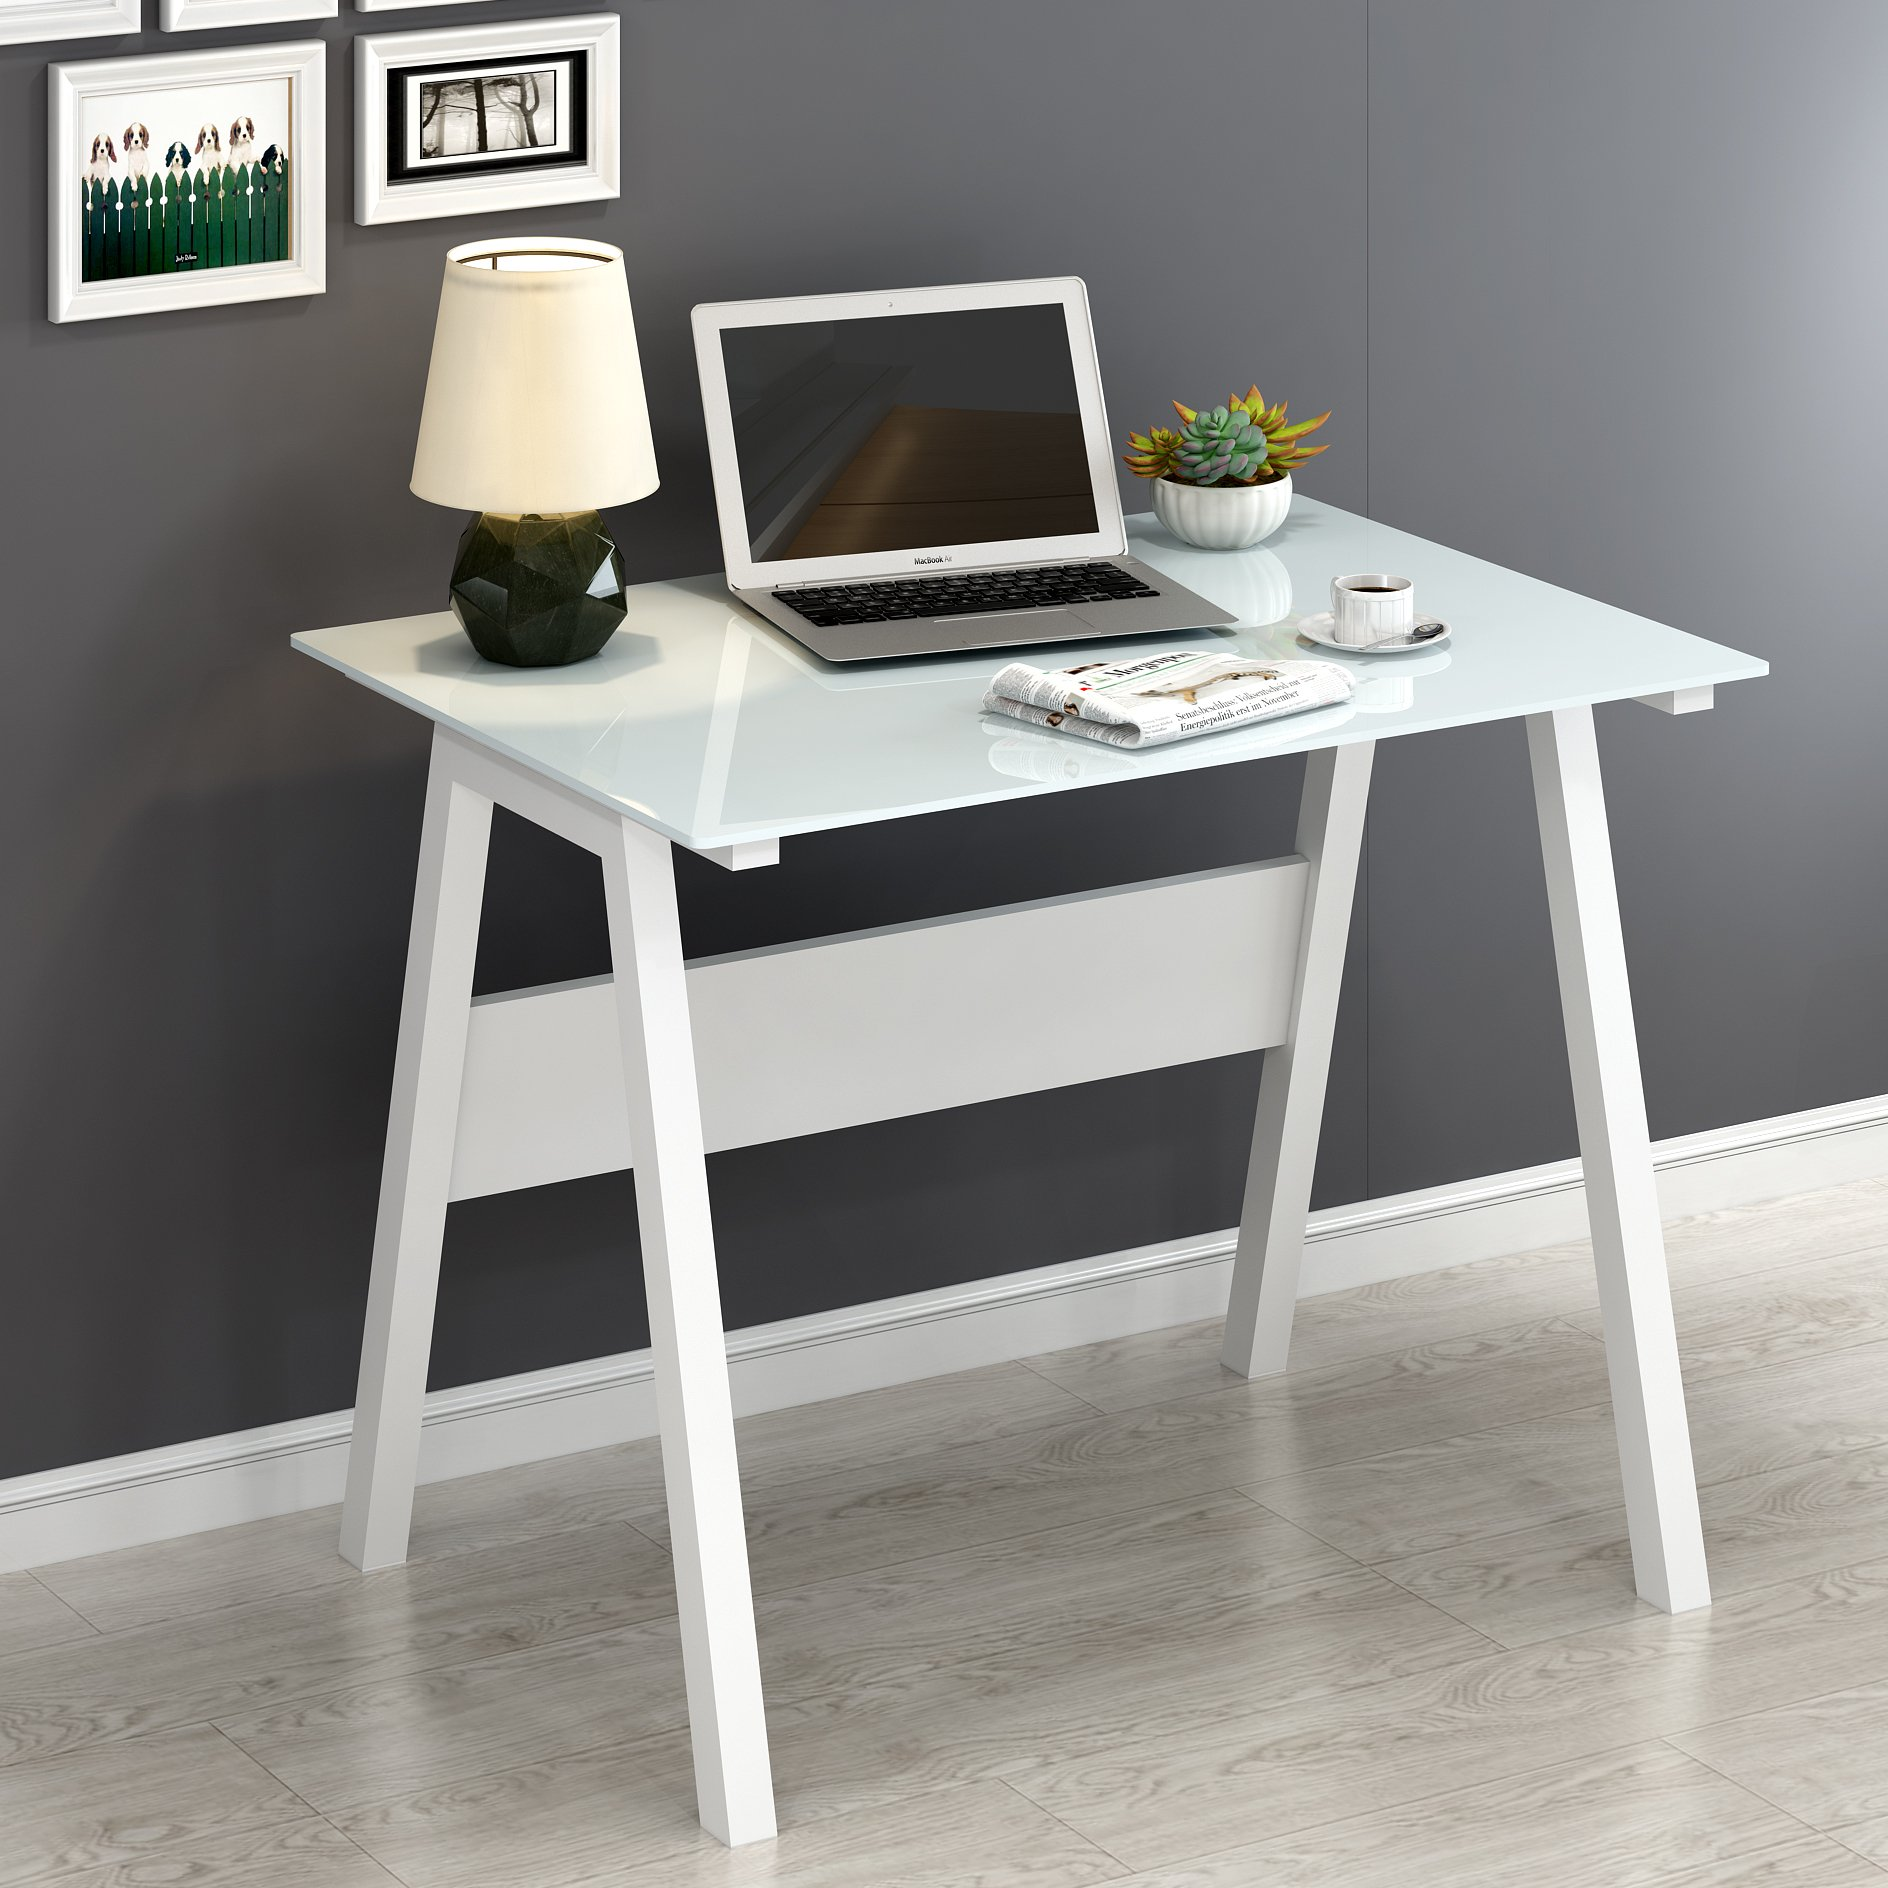 promo code f36ea 9e6b9 Details about Small White Study Desk Tempered Glass Top Metal Frame Laptop  Writing Desk Office